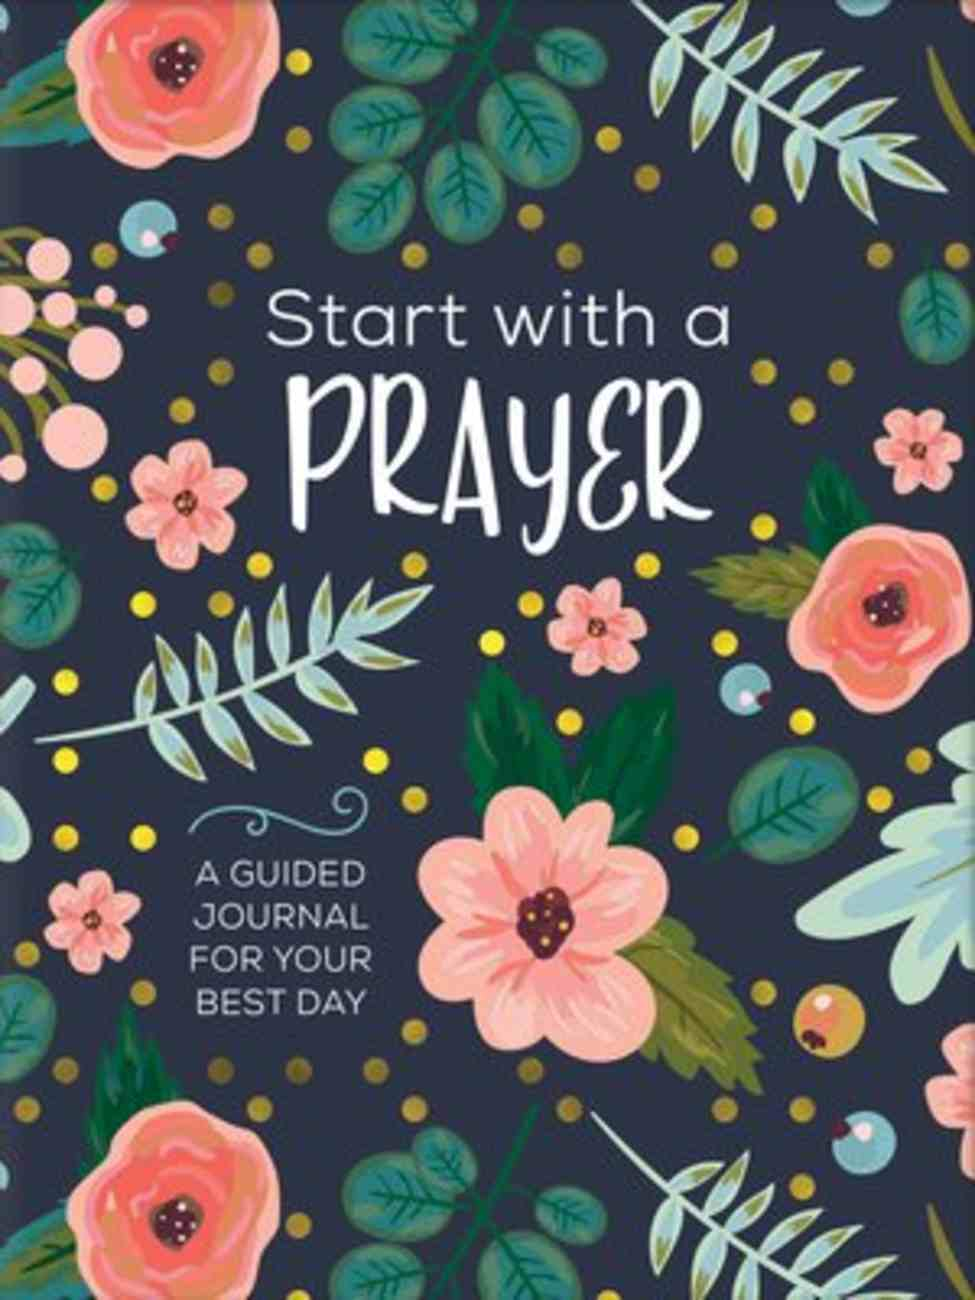 Start With a Prayer: A Guided Journal For Your Best Day Paperback